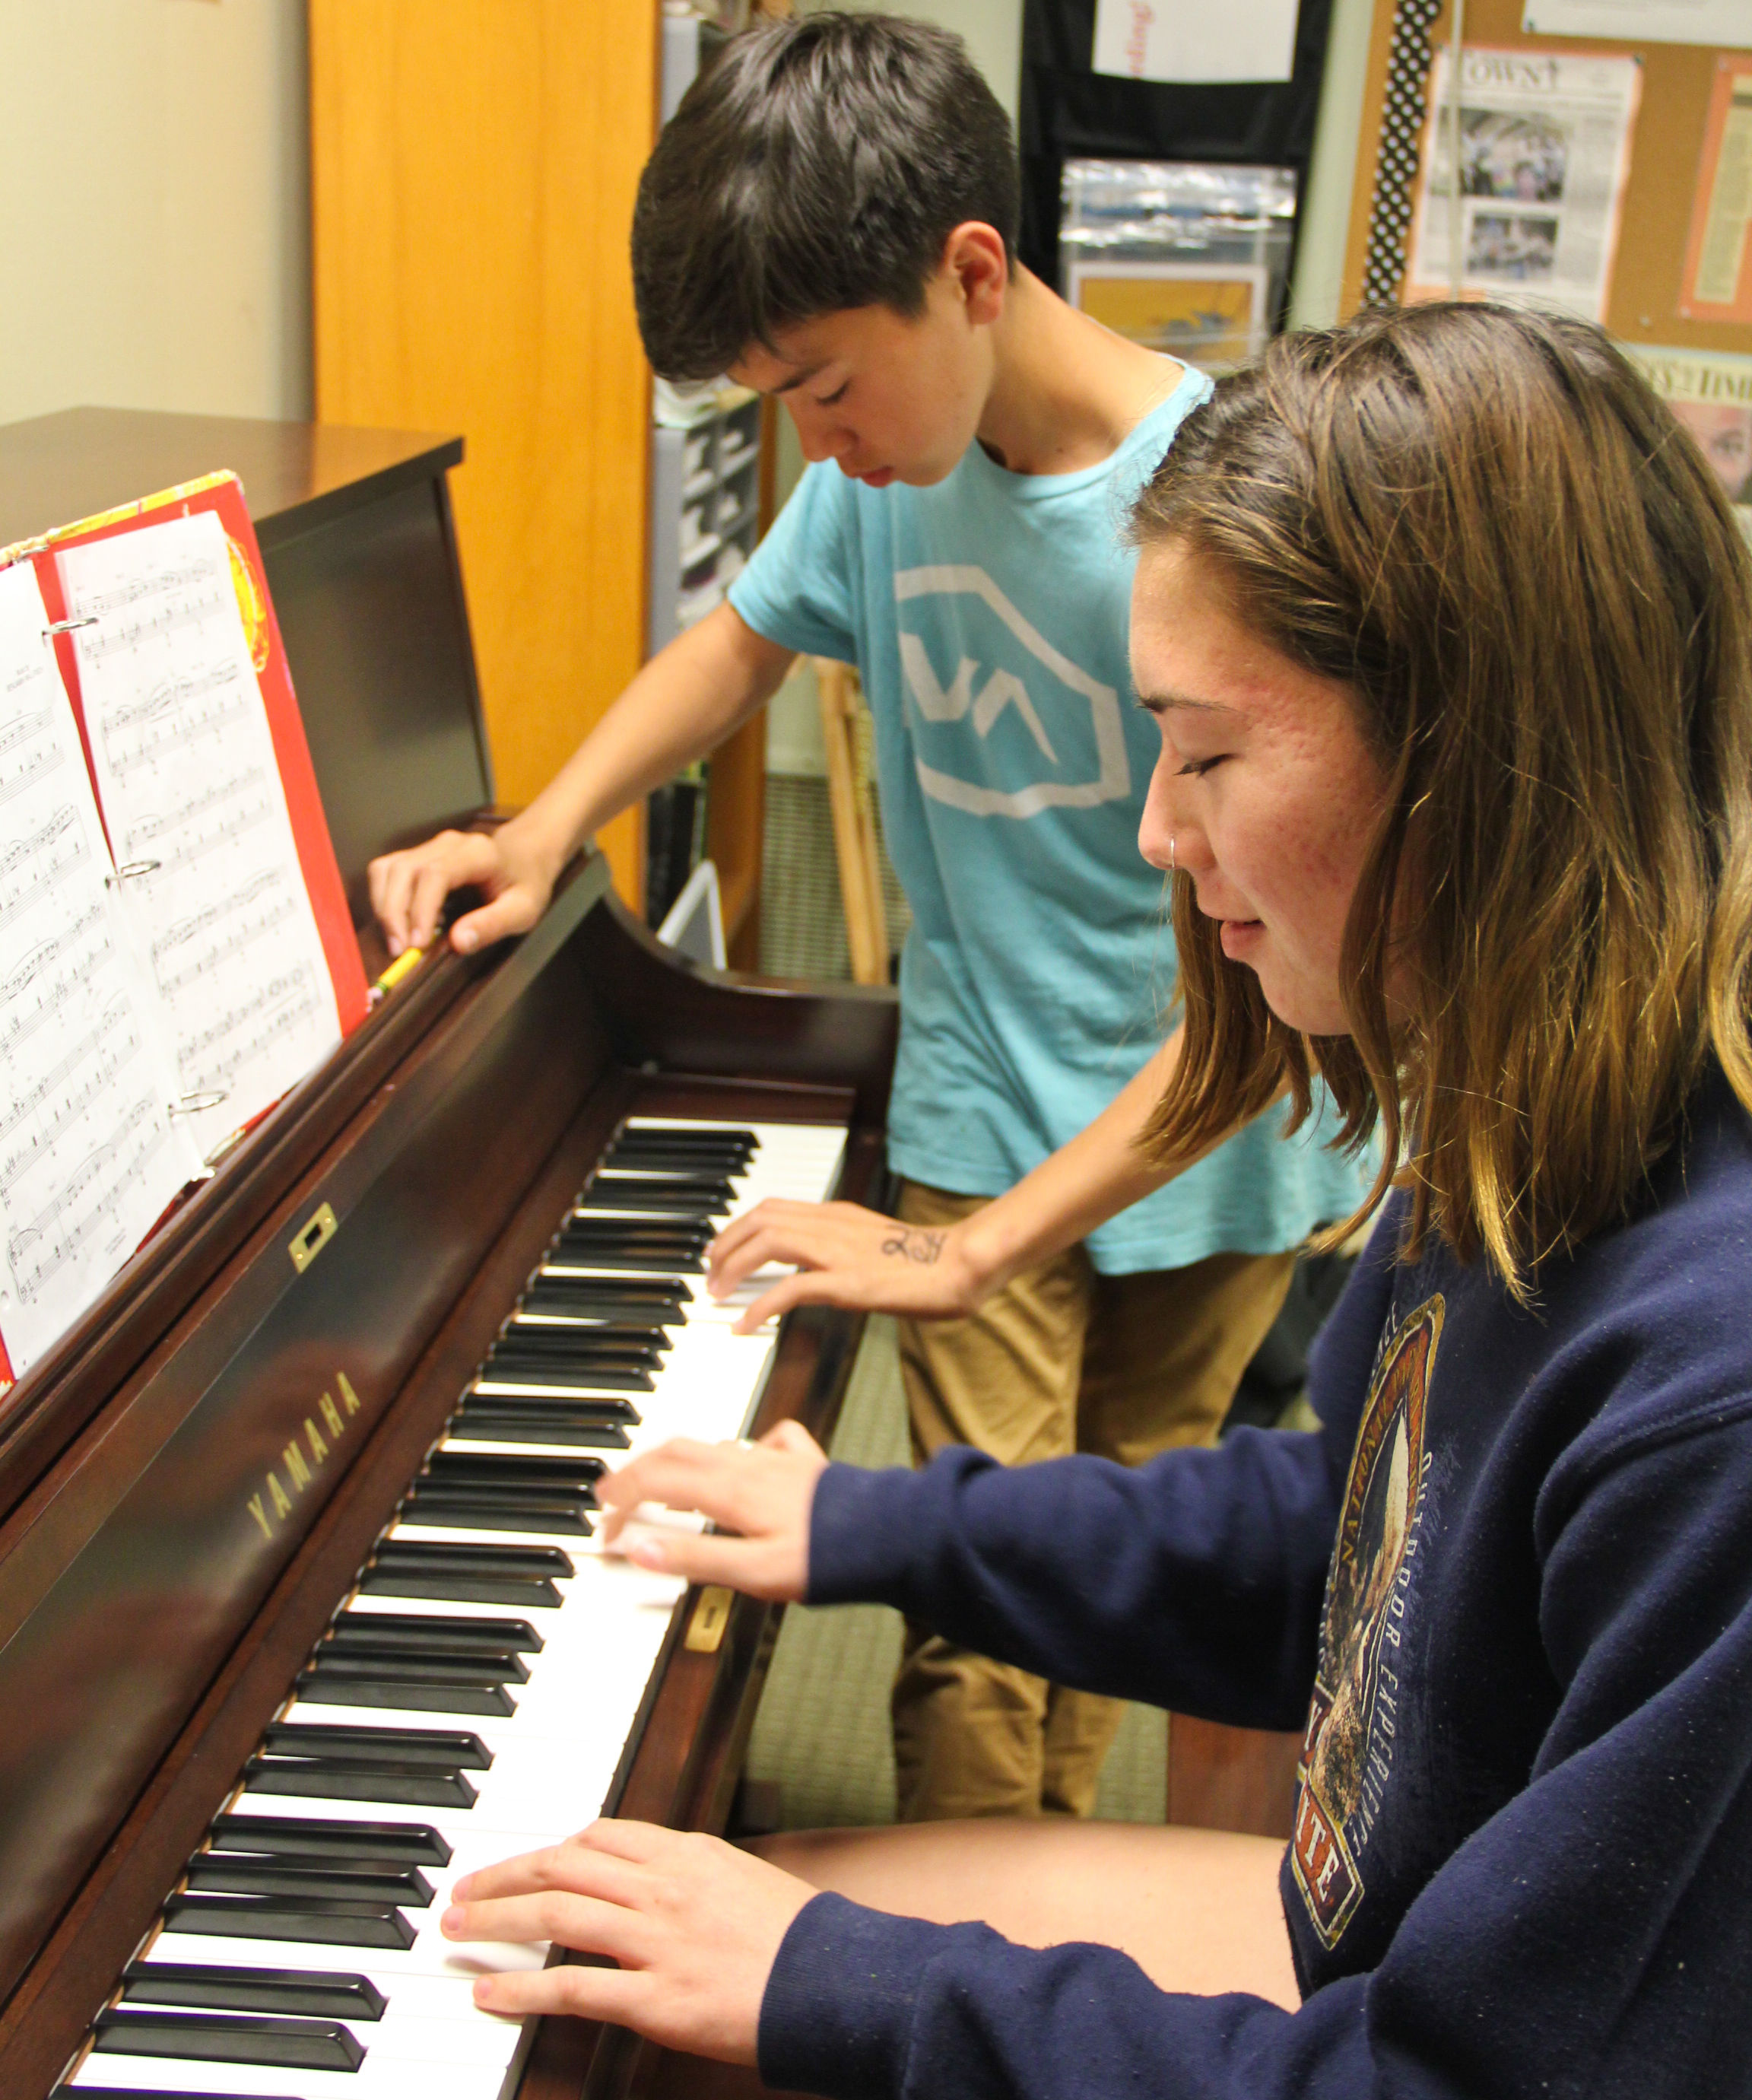 """Piano Classes for TeensTeens especially thrive in a group environment - it's 100% social! In addition to developing their technical and reading skills, the highlight of teen classes is the """"piano band"""" experience. Students enjoy regular opportunities to play their favorite pop tunes in a lively setting and among their friends. Creative skills are also enhanced as students progress, encouraging students to improvise and even write their own music. This engaging program helps keeps teens in music lessons for far longer and guides them to become lifelong musicians. -"""